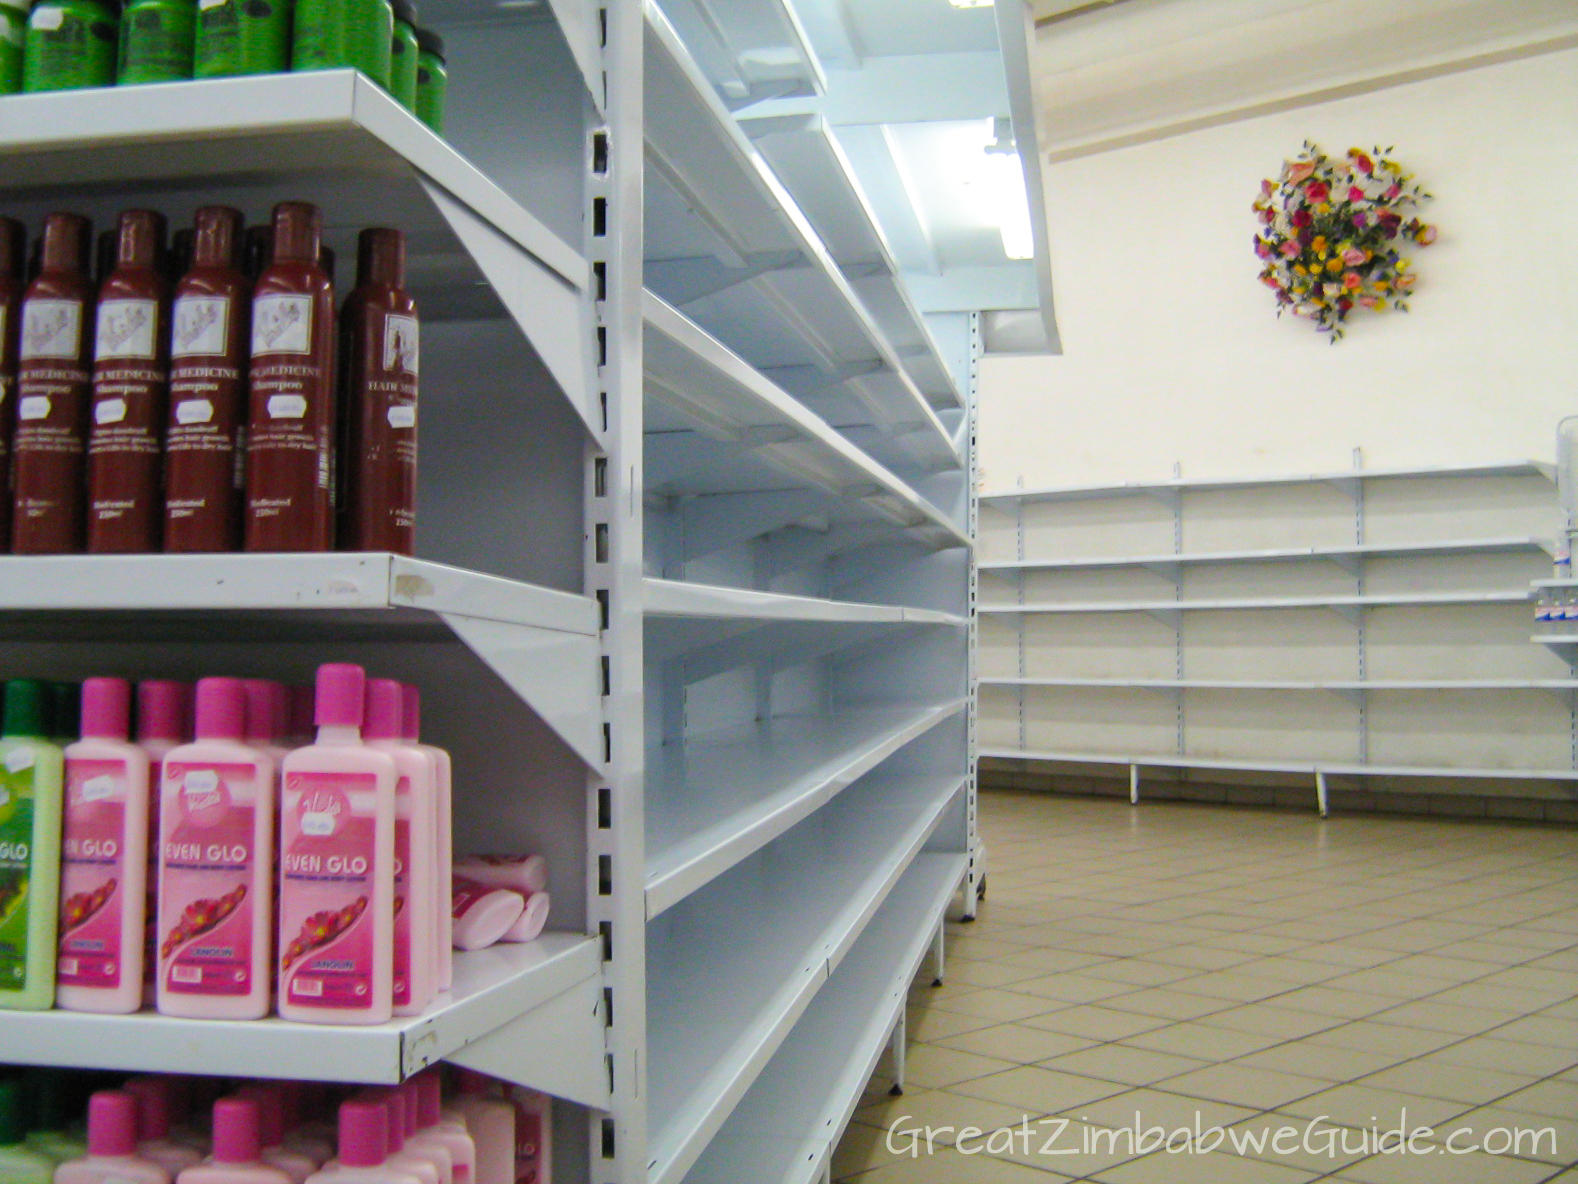 Great Zimbabwe Guide 2008 Supermarket Shelves Hyperinflation